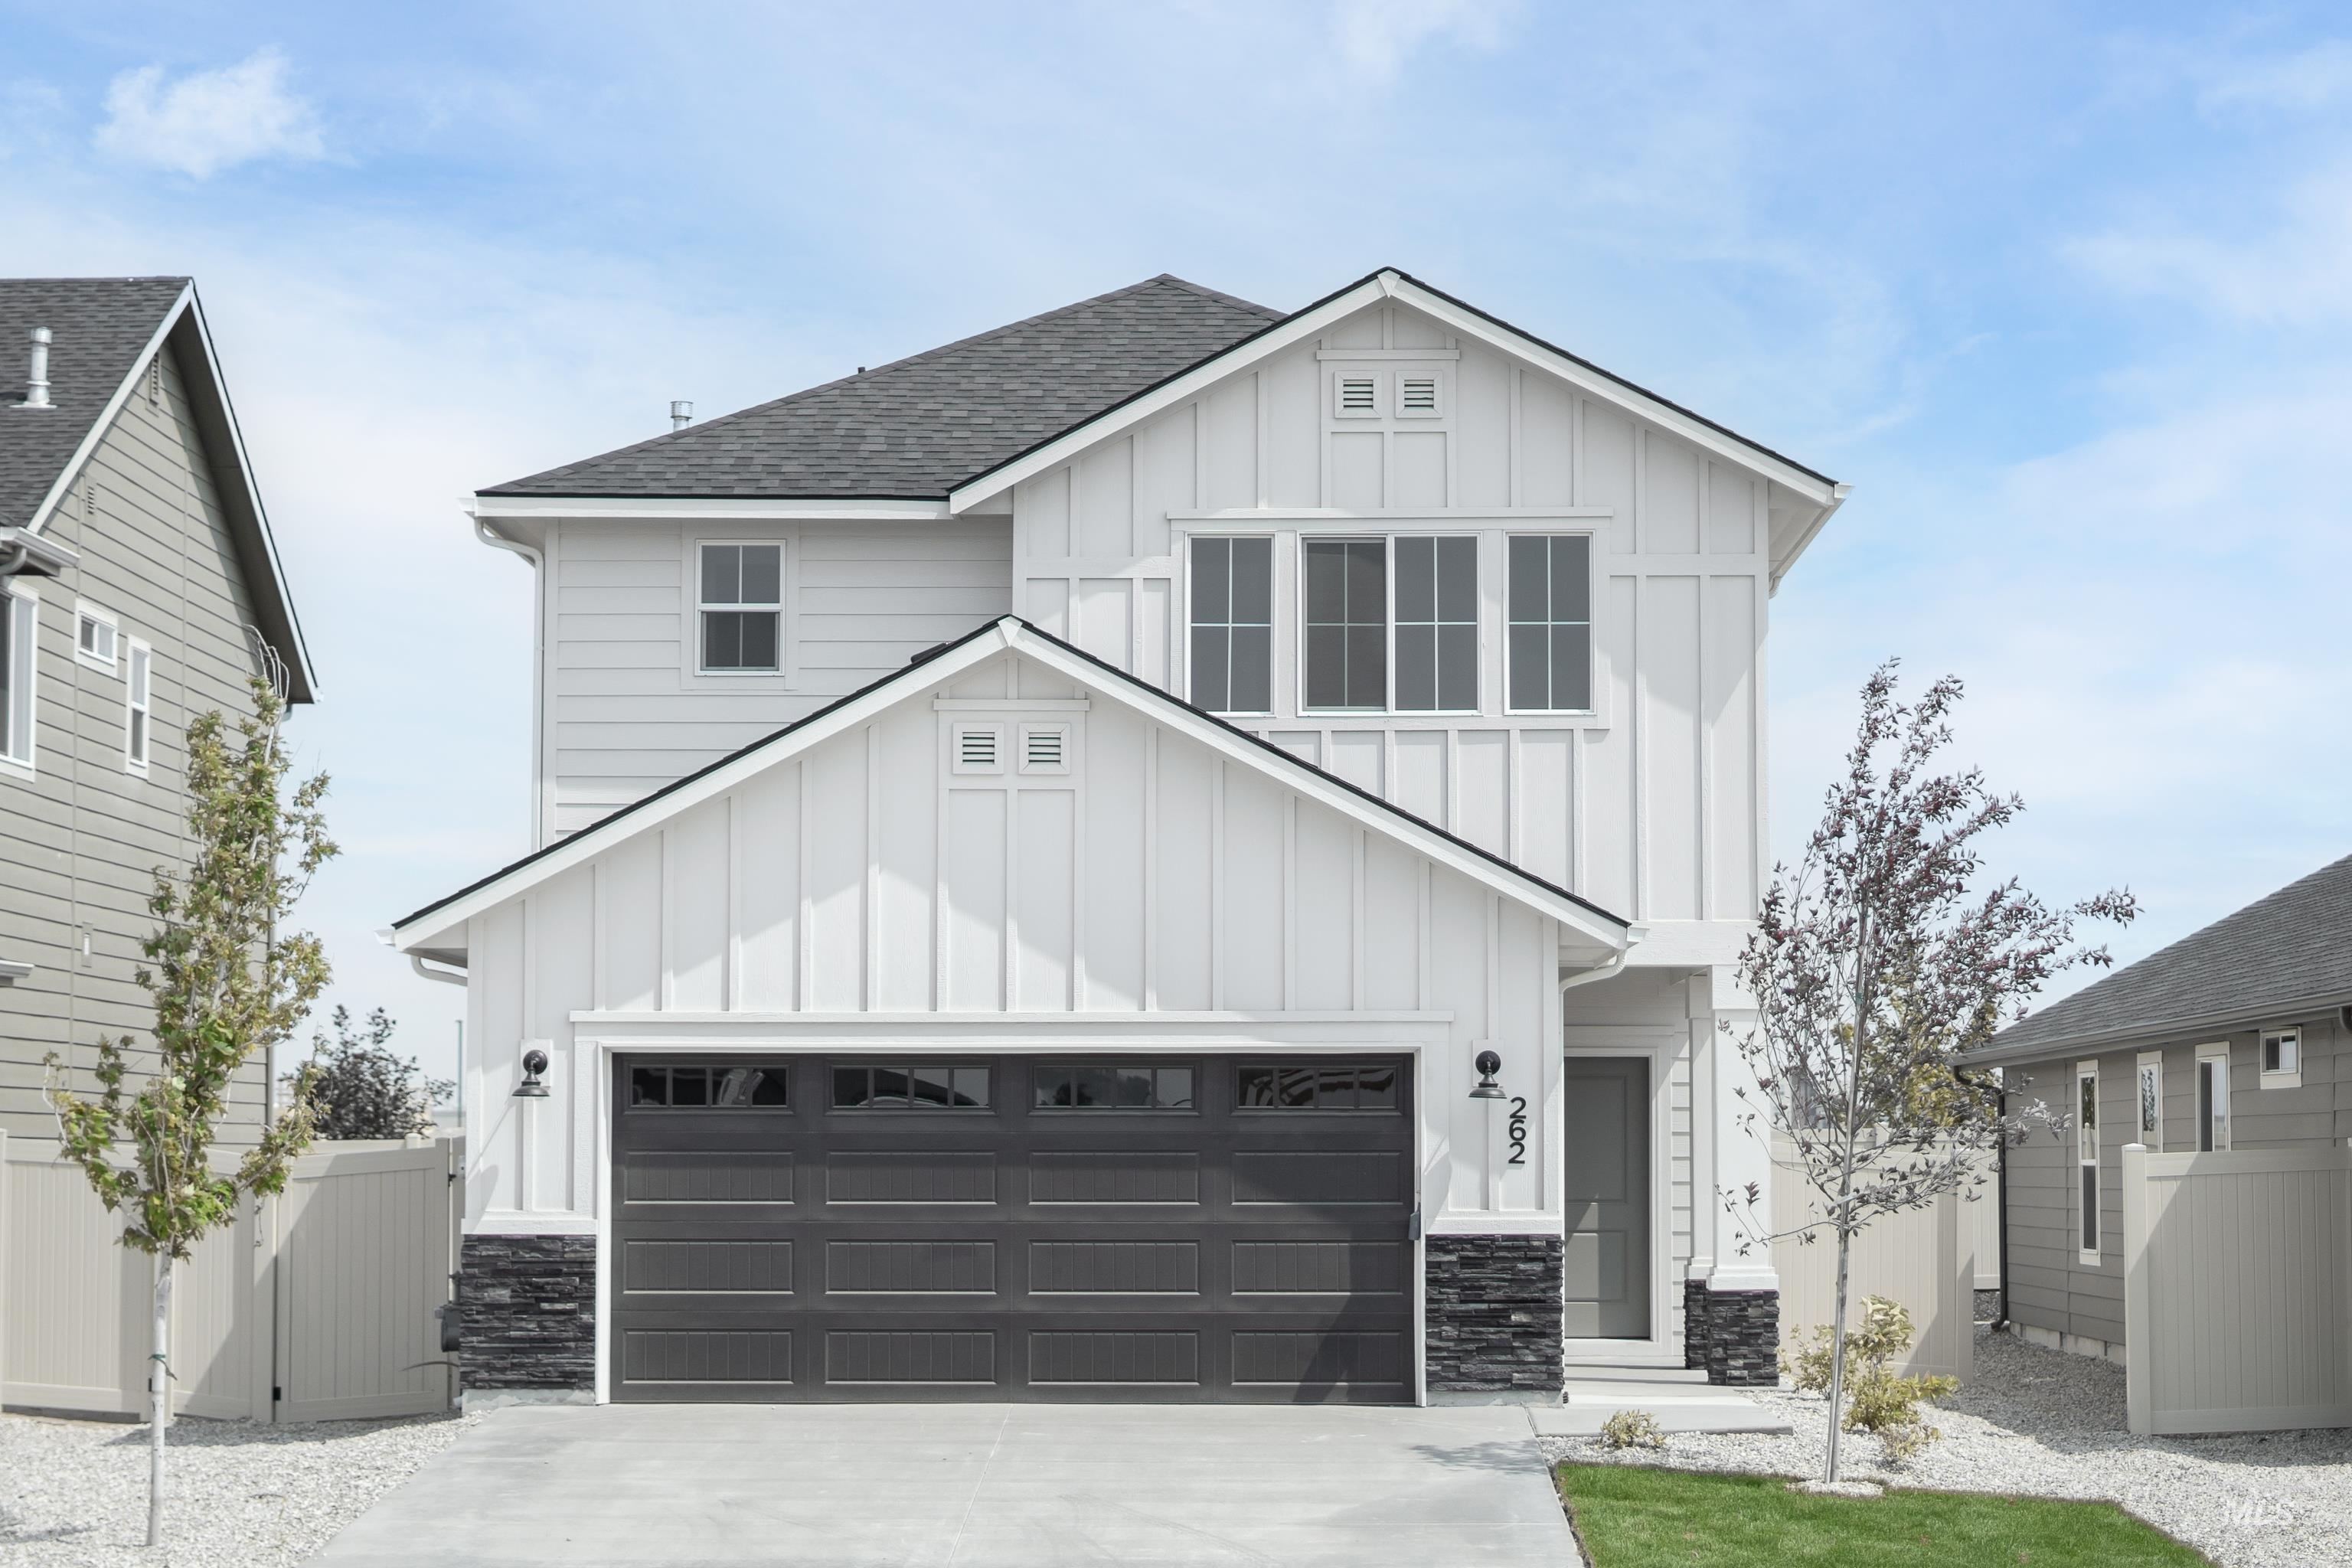 Get $25k with our Buy Now, Get More Promo NOW thru 7/31. Want to tour this home NOW? Get on-demand access with TOUR NOW. Simply visit the home, follow the directions to access, and tour instantly.   The Dryden 1851 is a brand new 2 story perfect home.  With an open kitchen, dining, and living room downstairs and the master, two bedrooms, plus a bonus room upstairs. Includes upgraded cabinets, dual vanity, evp flooring, stainless appliances, quartz kitchen counter tops, and more. Photos are similar. RCE-923